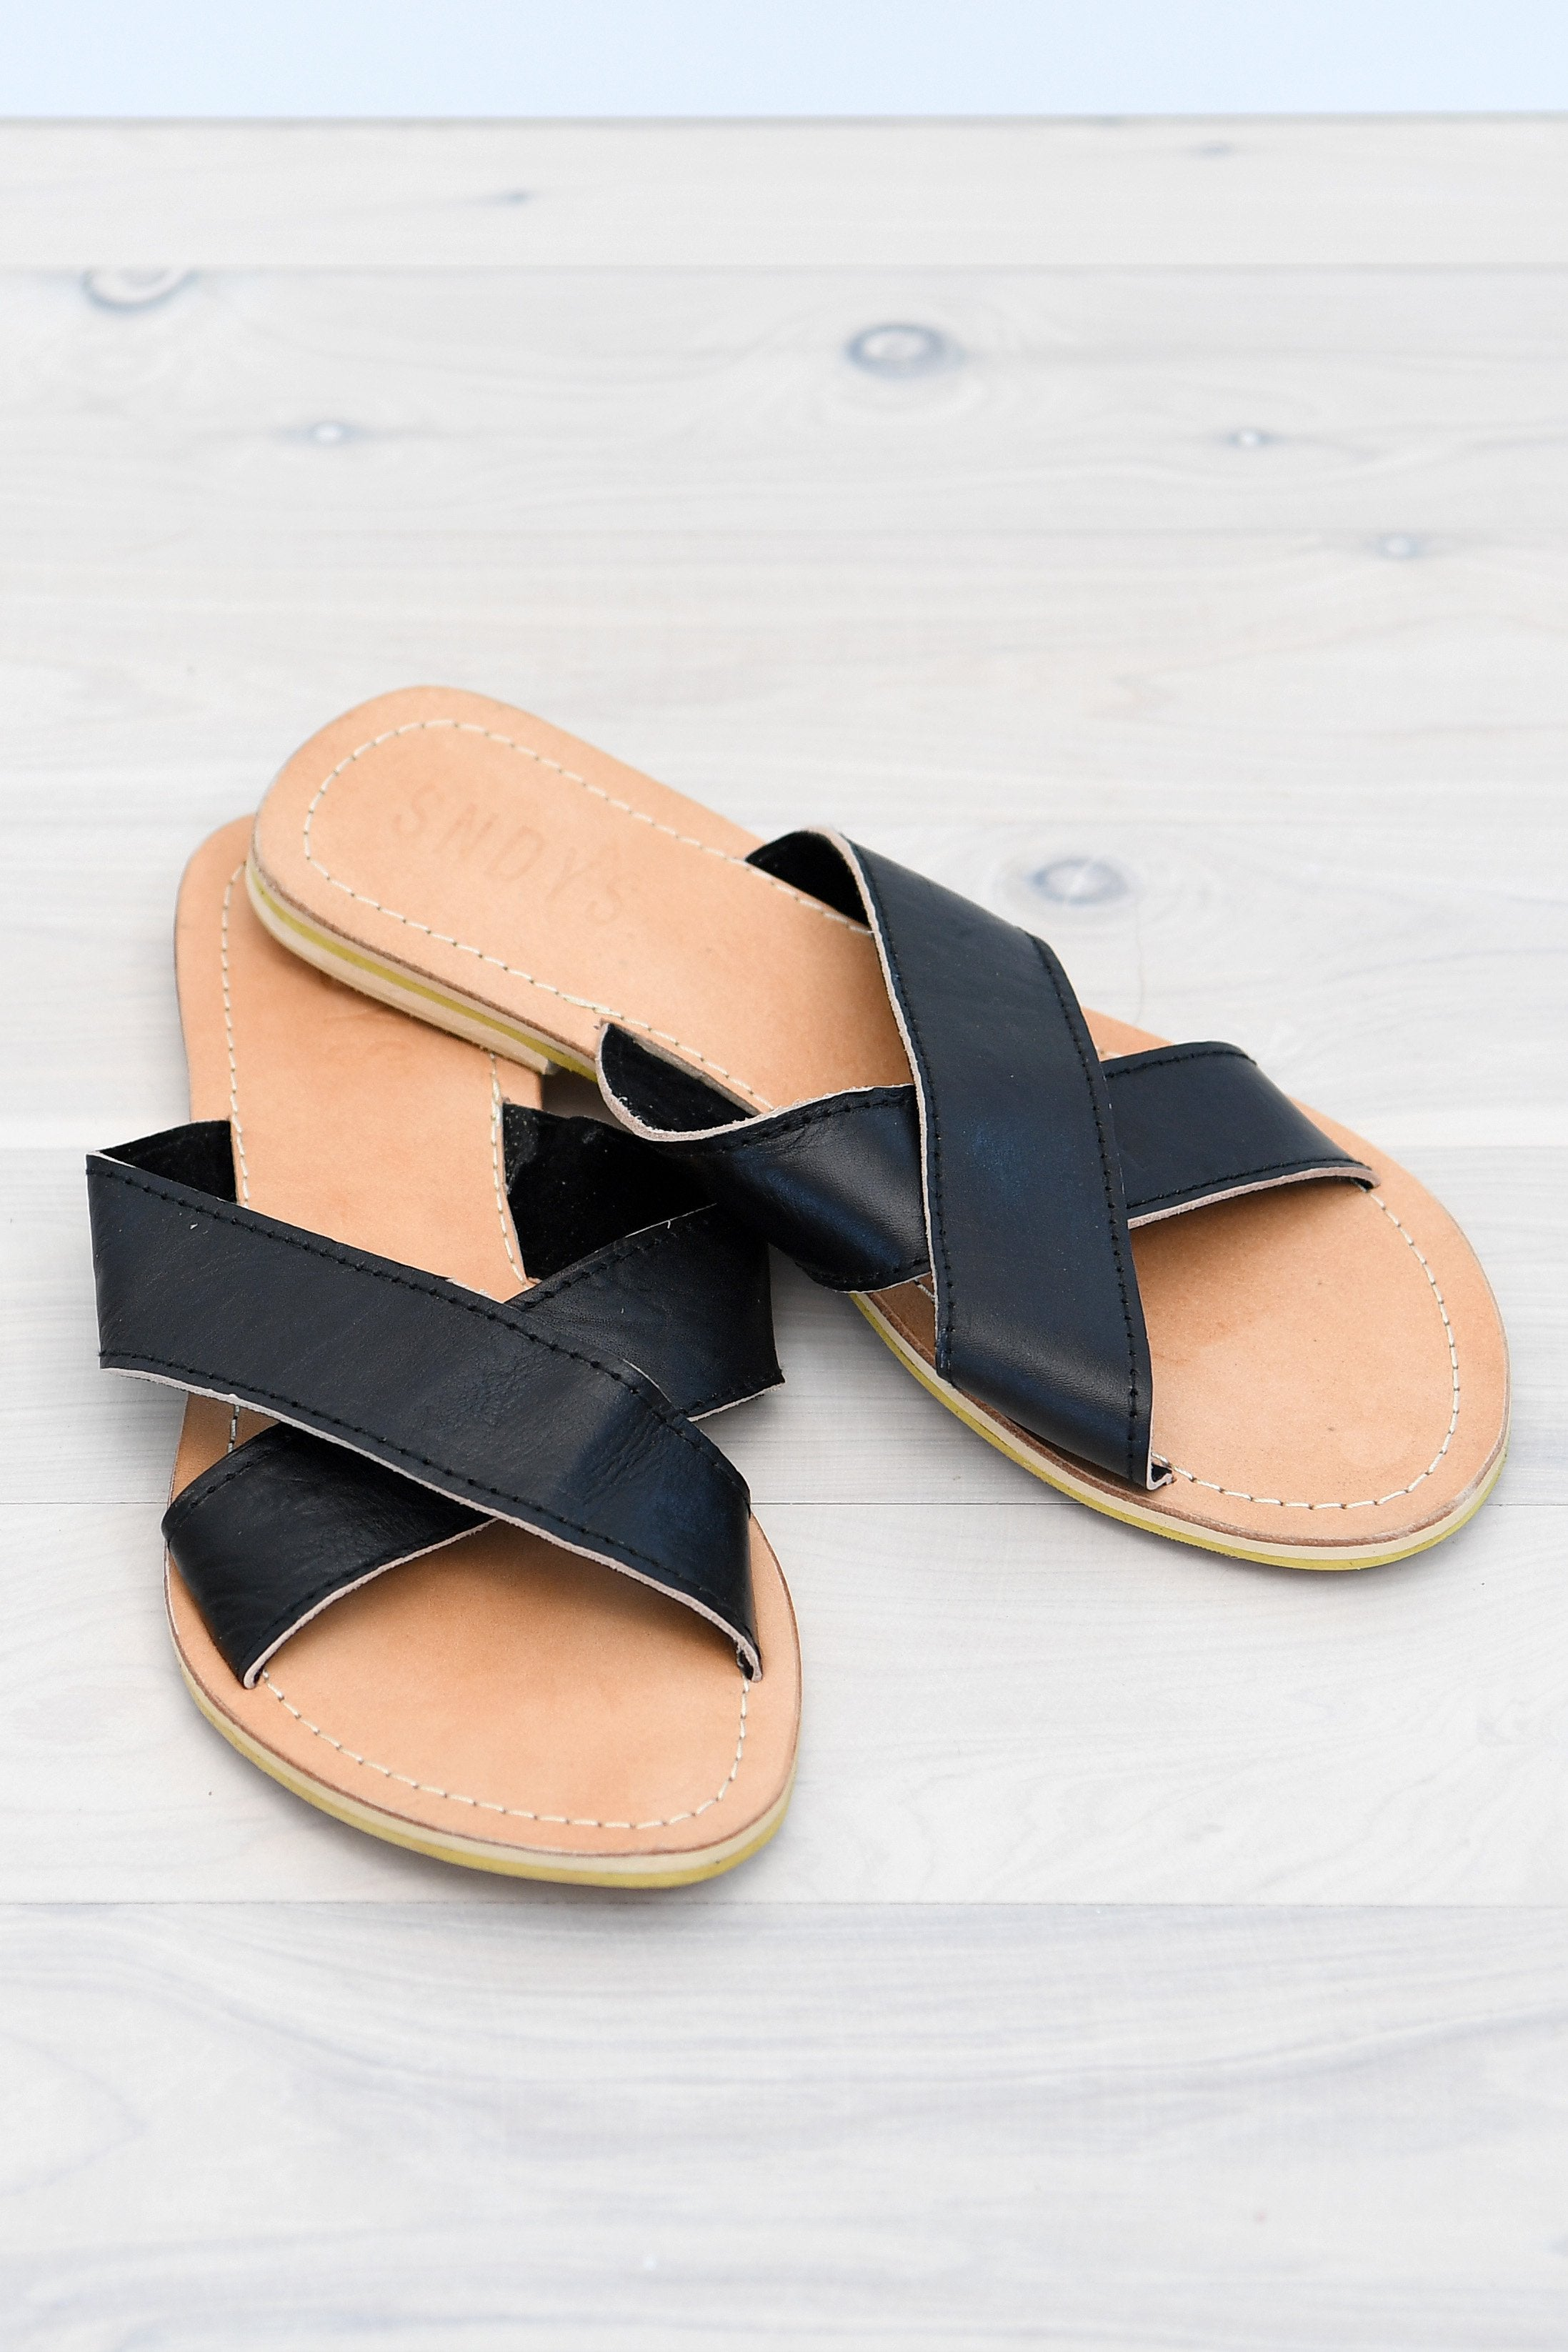 PAXTON SLIDES - BLACK